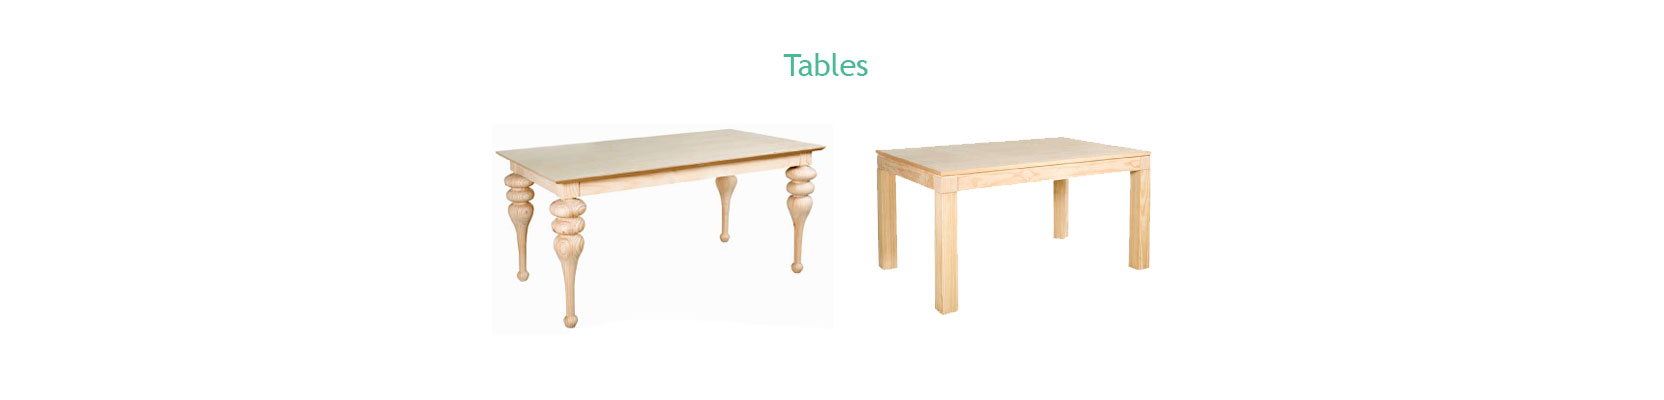 tables-bois-brut